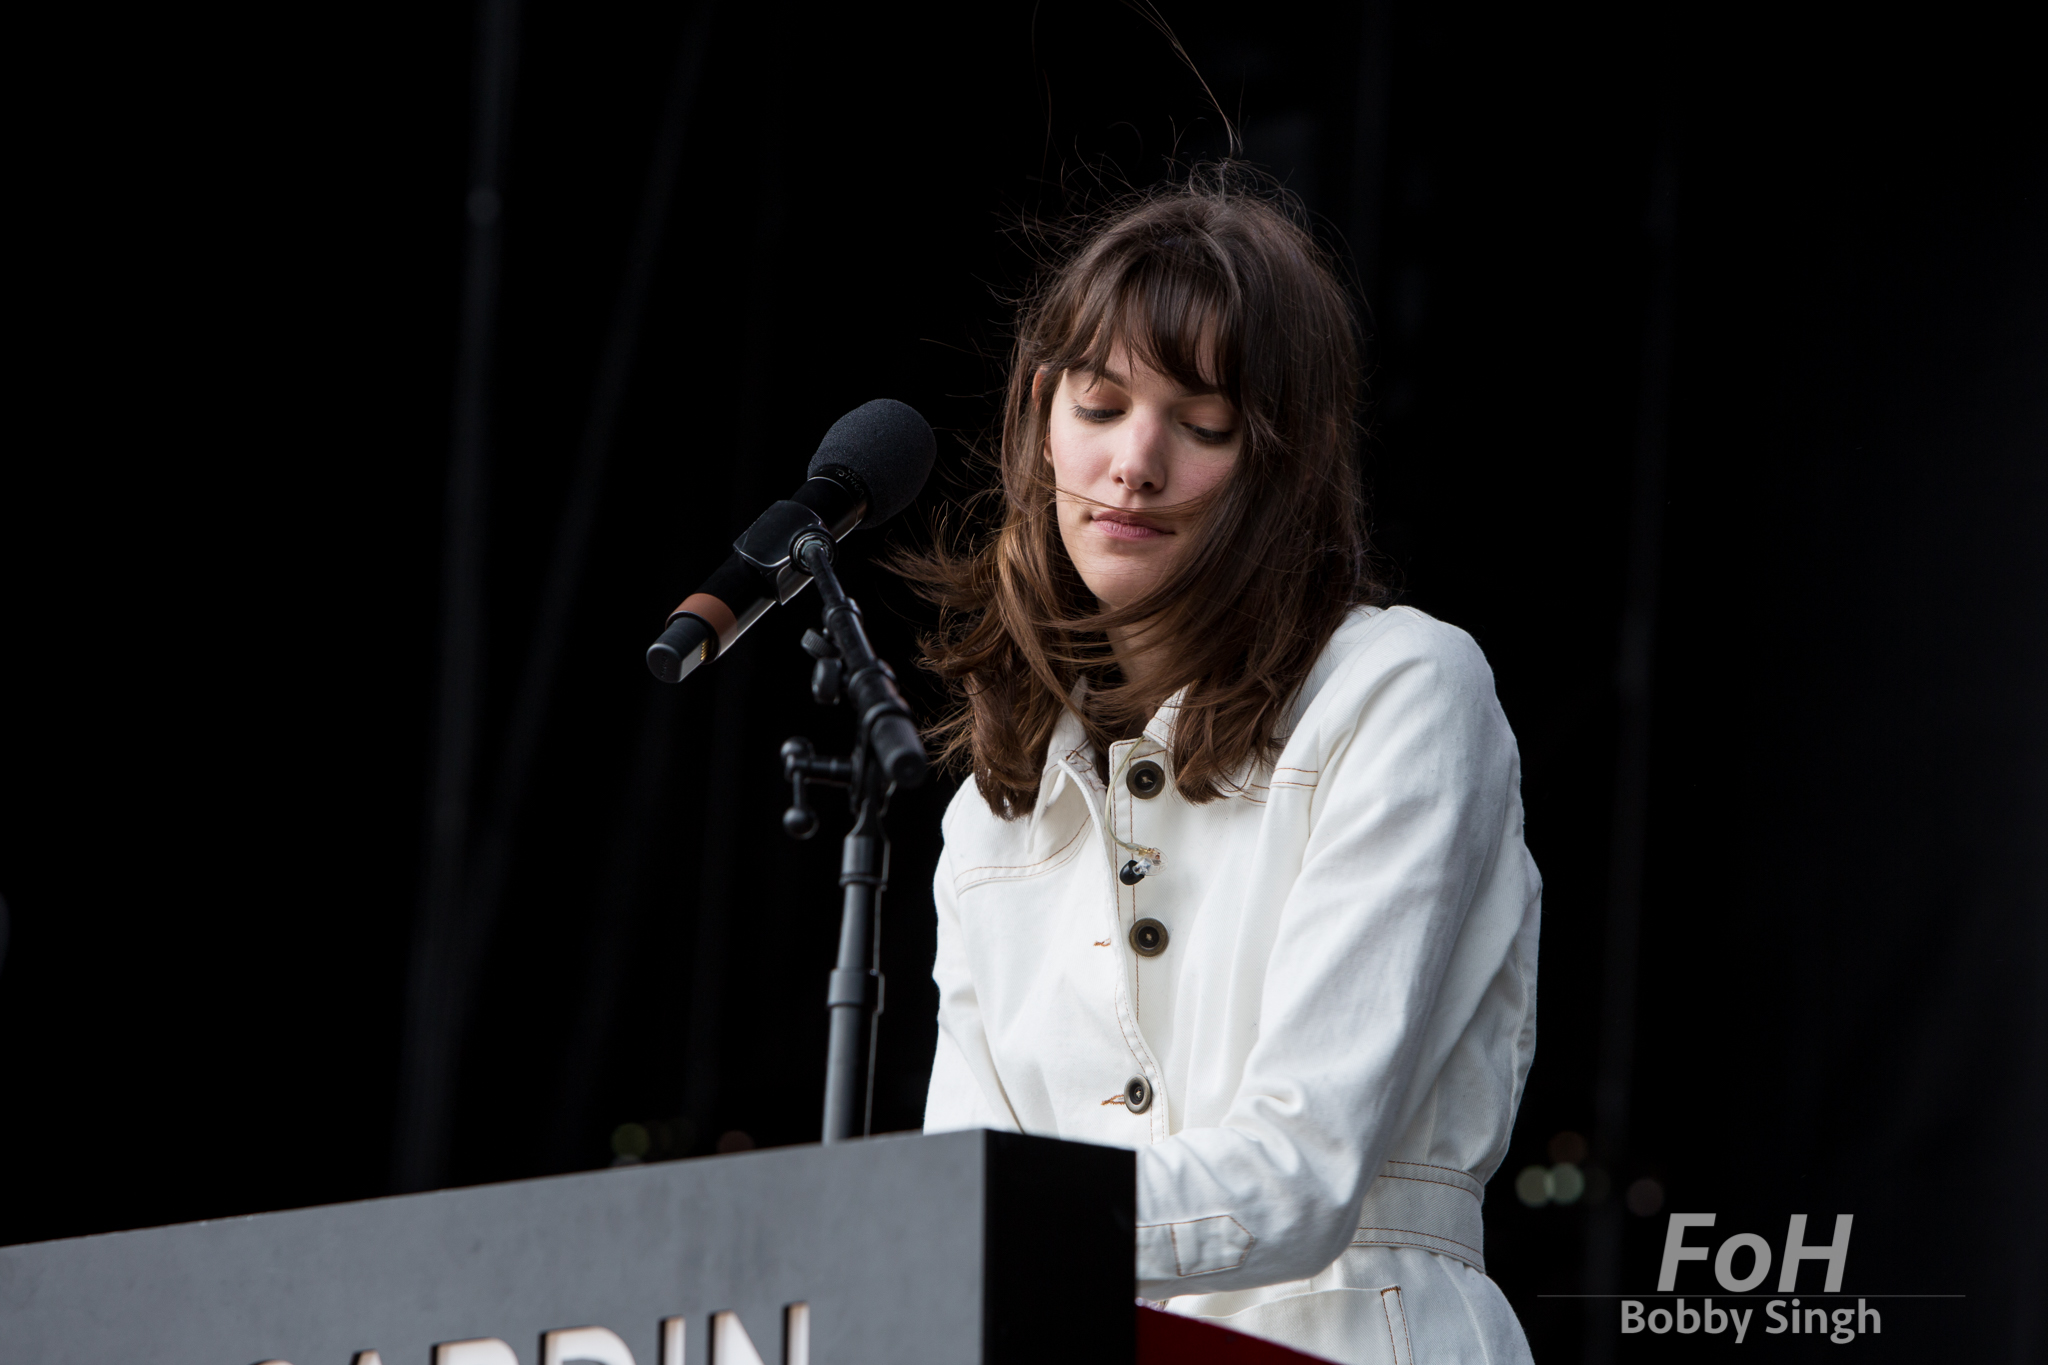 Charlotte Cardin performs at CBC Music Fest in Toronto, CANADA